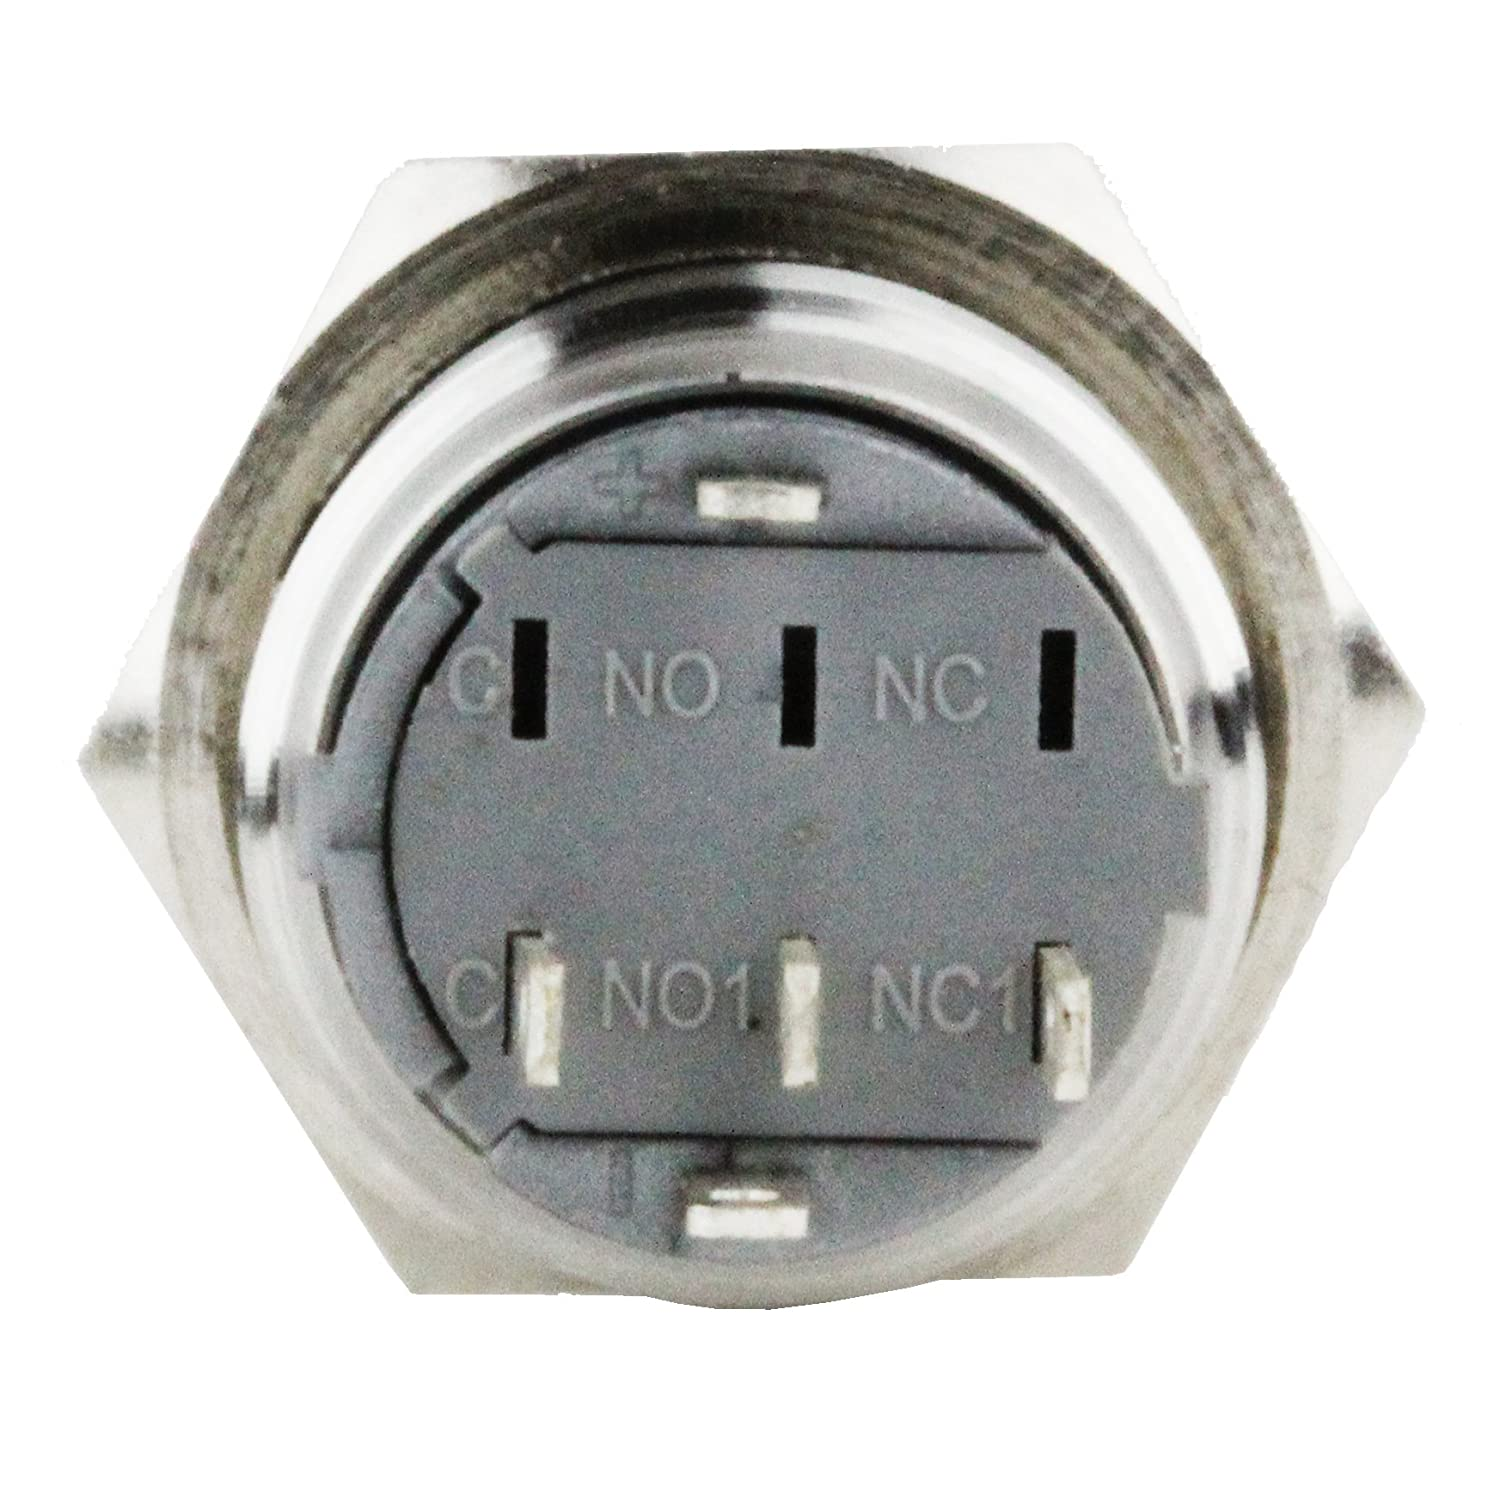 816Kr1BZK%2BL._SL1500_ splash resistant 16mm power push button on off latching switch w  at fashall.co